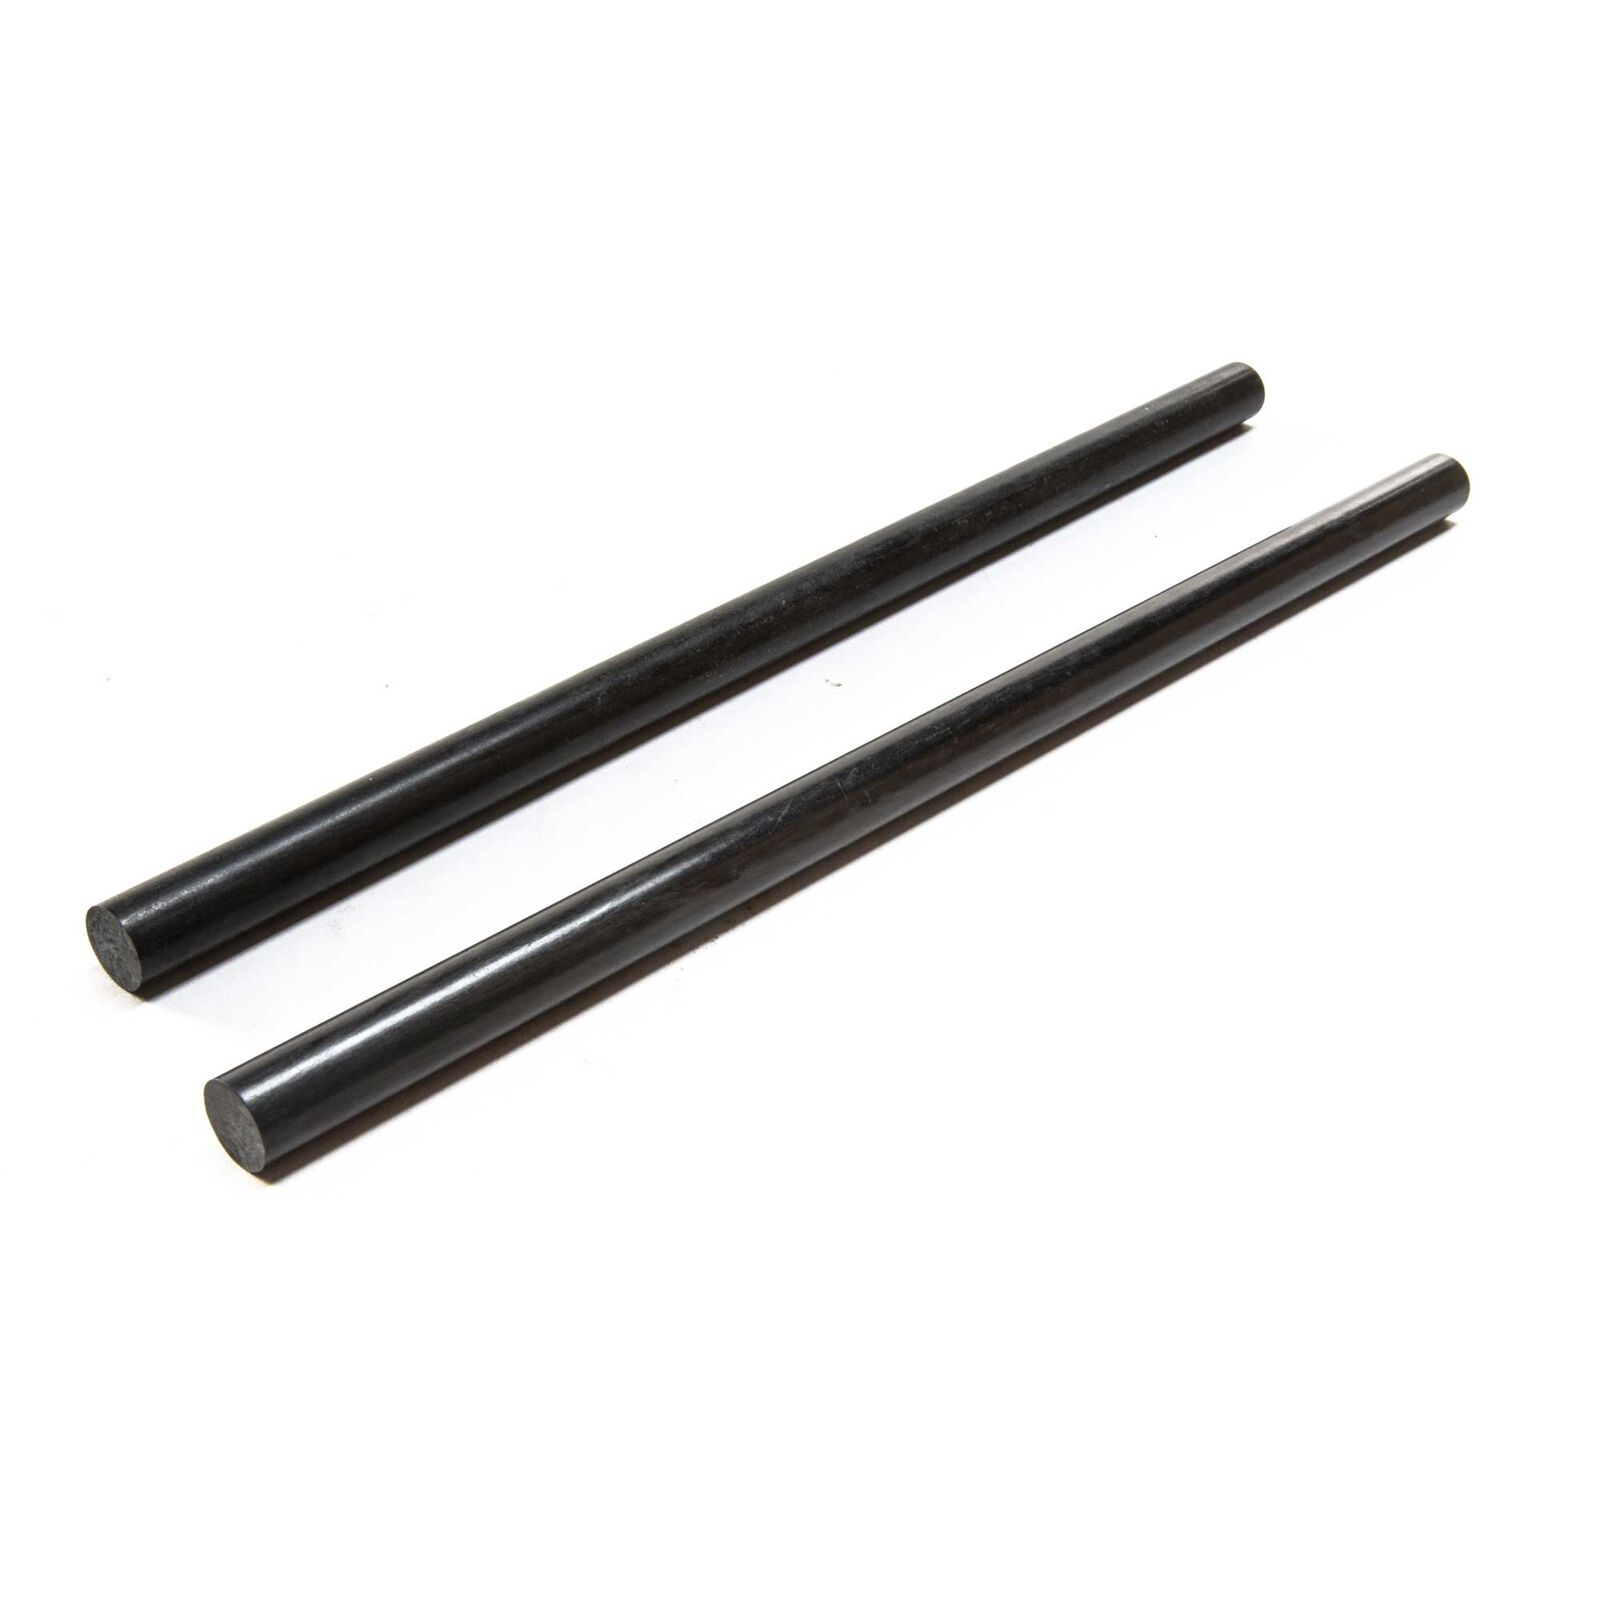 Outer Wing Rods: ASH 31 6.4m